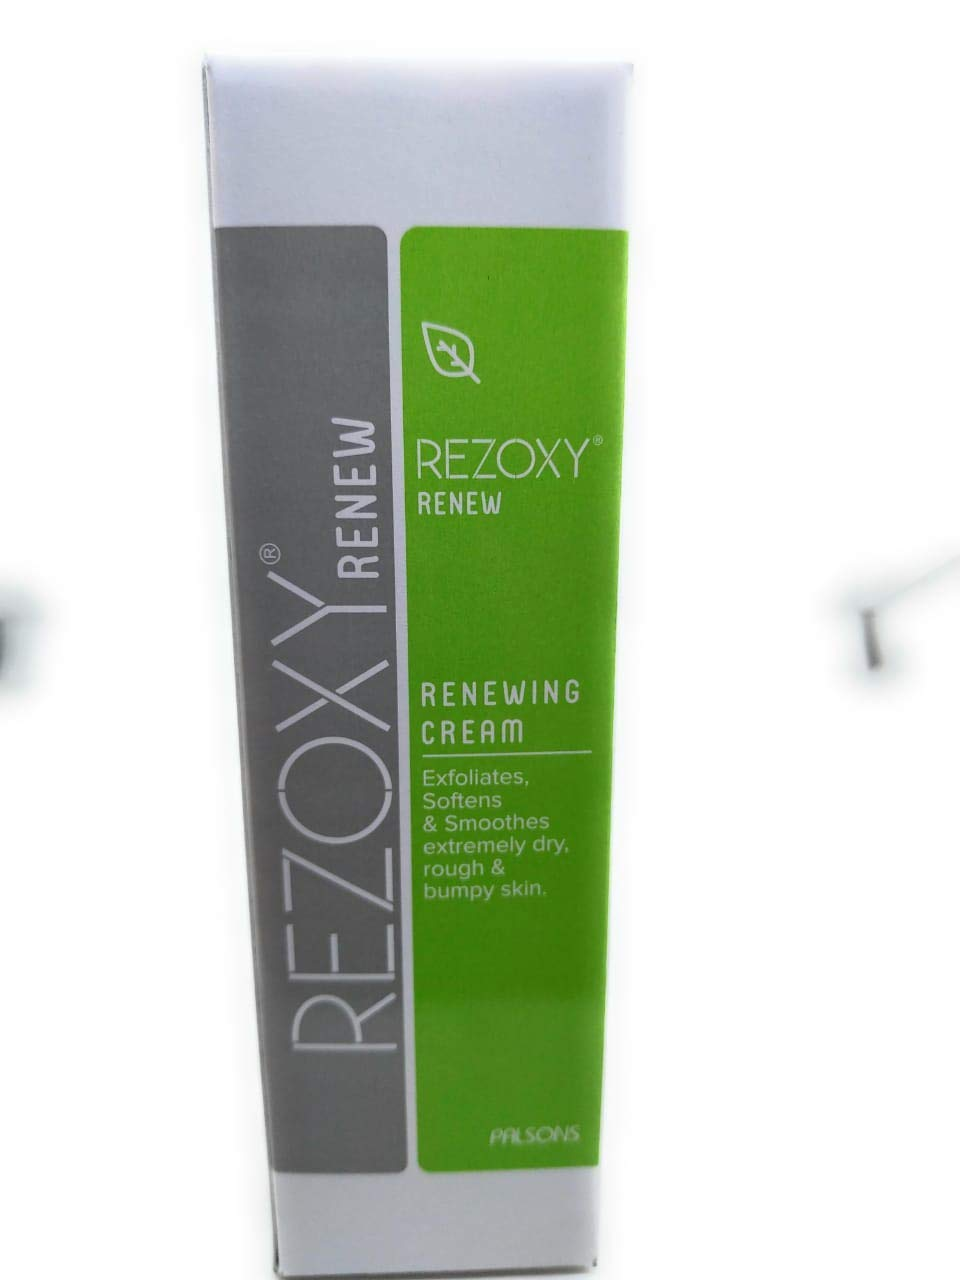 REZOXY RENEW RENEWING CREAM 50GM EXFOLIATES ,SOFTENS & SMOOTHNESS EXTREMELY DRY,ROUGH & BUMPY SKIN.